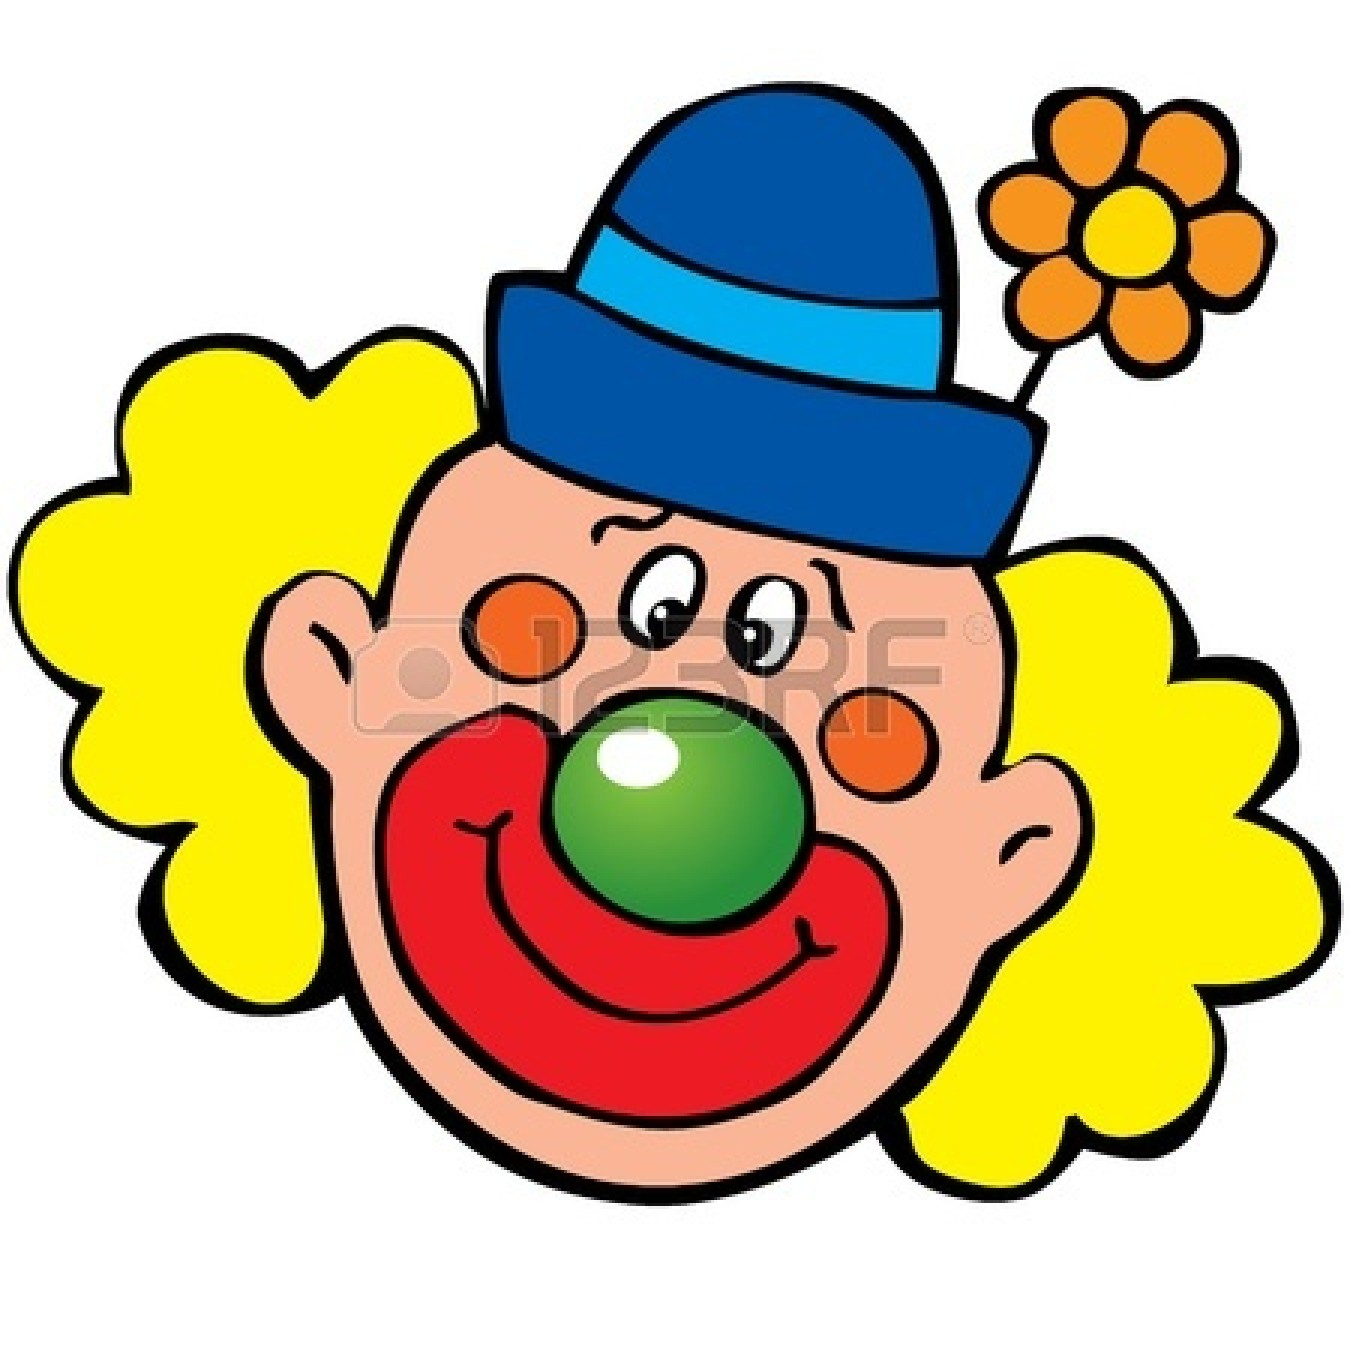 clip art clowns with balloons - photo #26